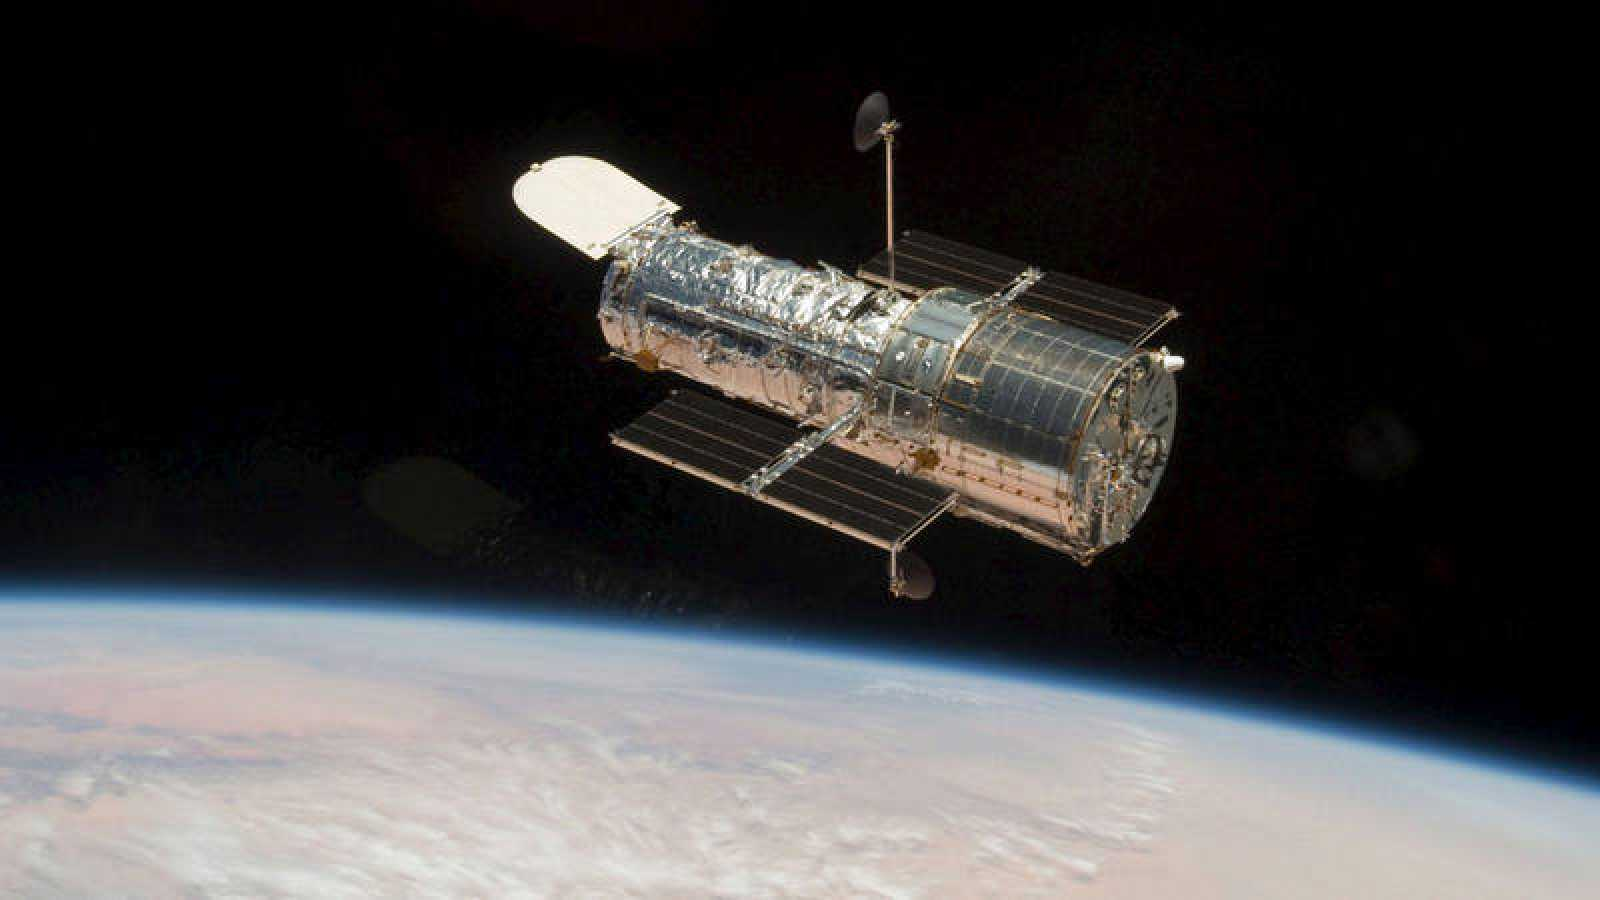 Hubble/ Fuente: NASA